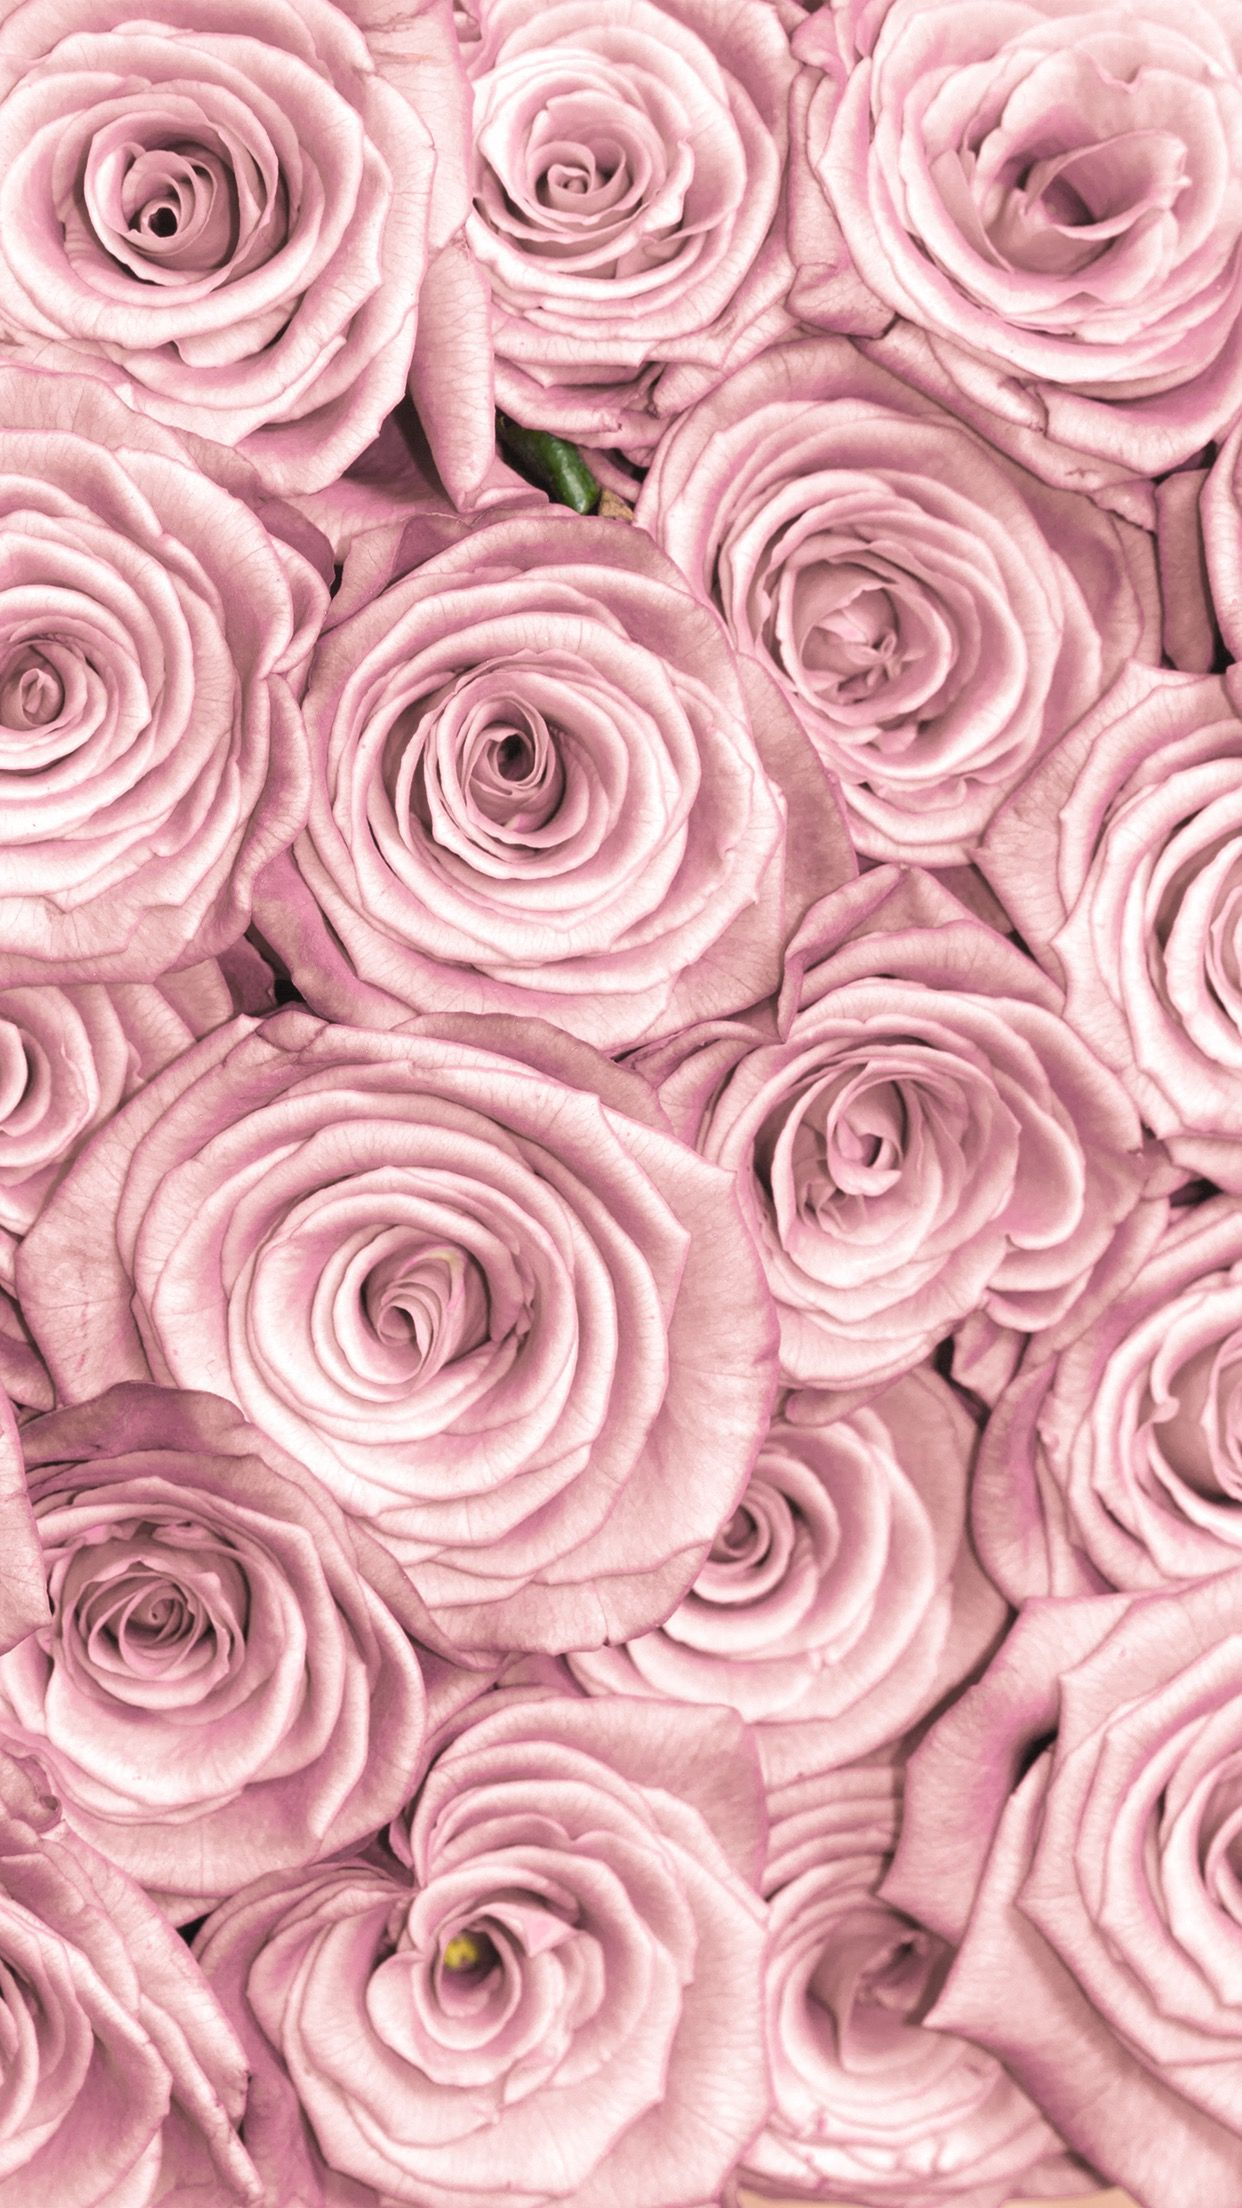 Iphone Background Pink Roses Rose Gold Wallpaper Iphone Rose Gold Wallpaper Gold Wallpaper Background